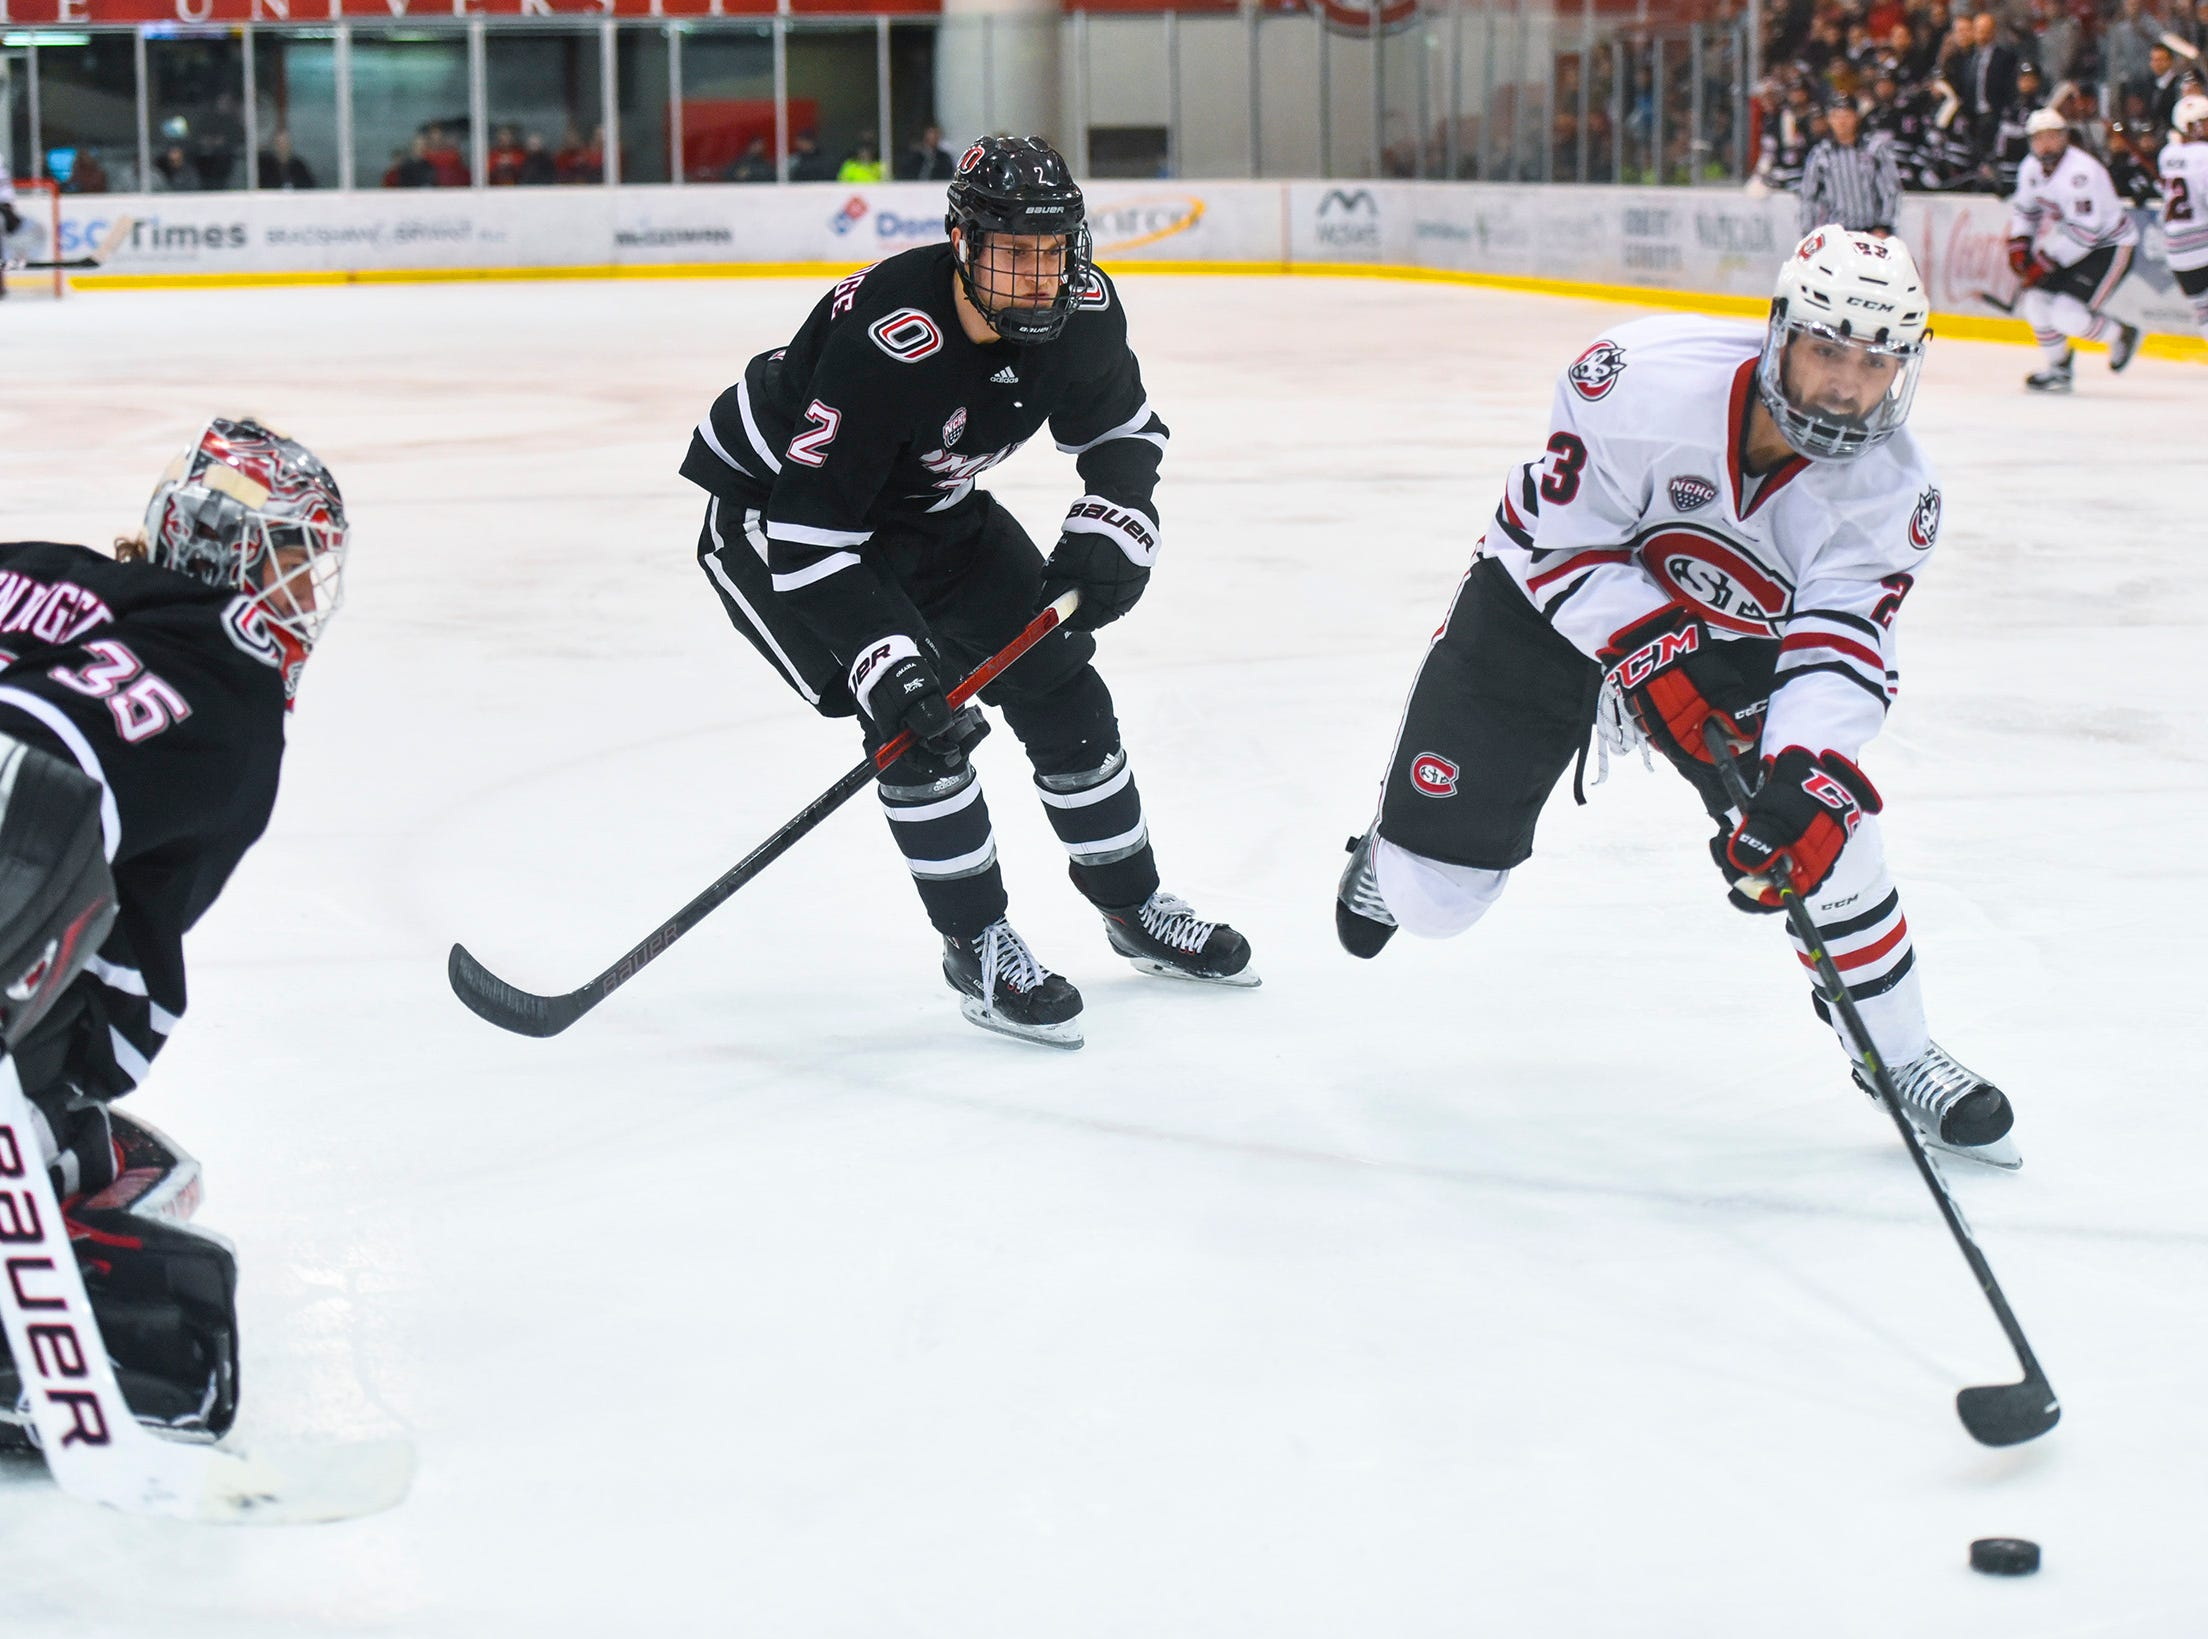 St. Cloud State's Robby Jackson tries to get the puck close to the Nebraska-Omaha goal during the second period Friday, Dec. 7, at the Herb Brooks National Hockey Center.